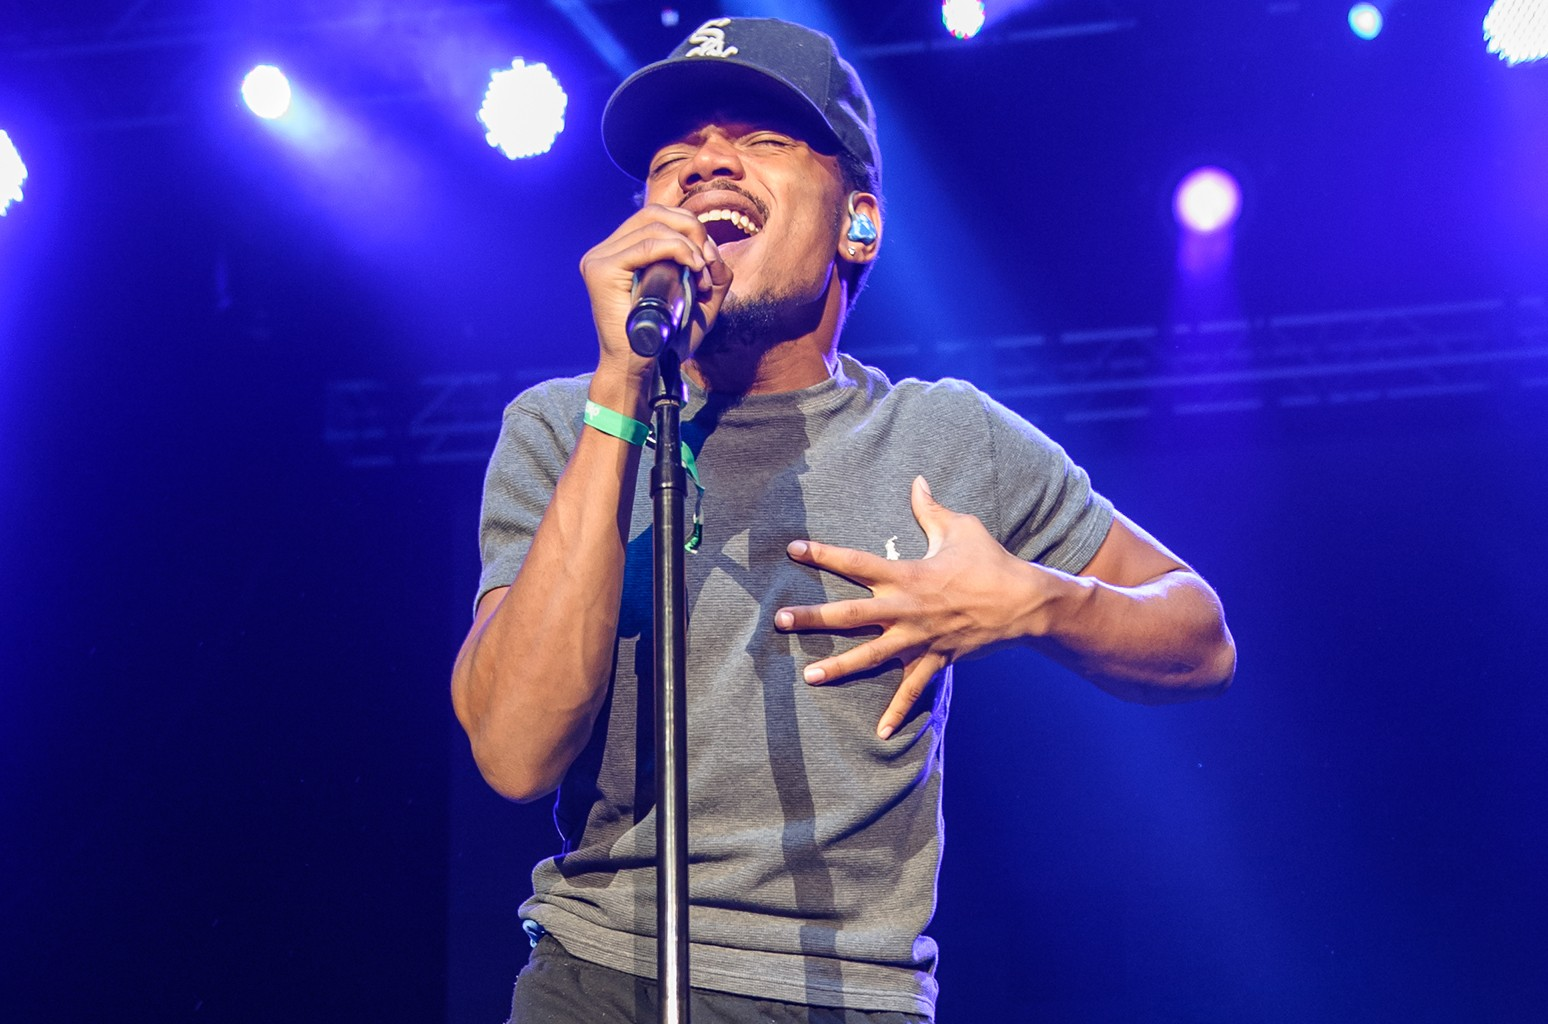 Chance The Rapper performs at the 2015 Trillectro Festival